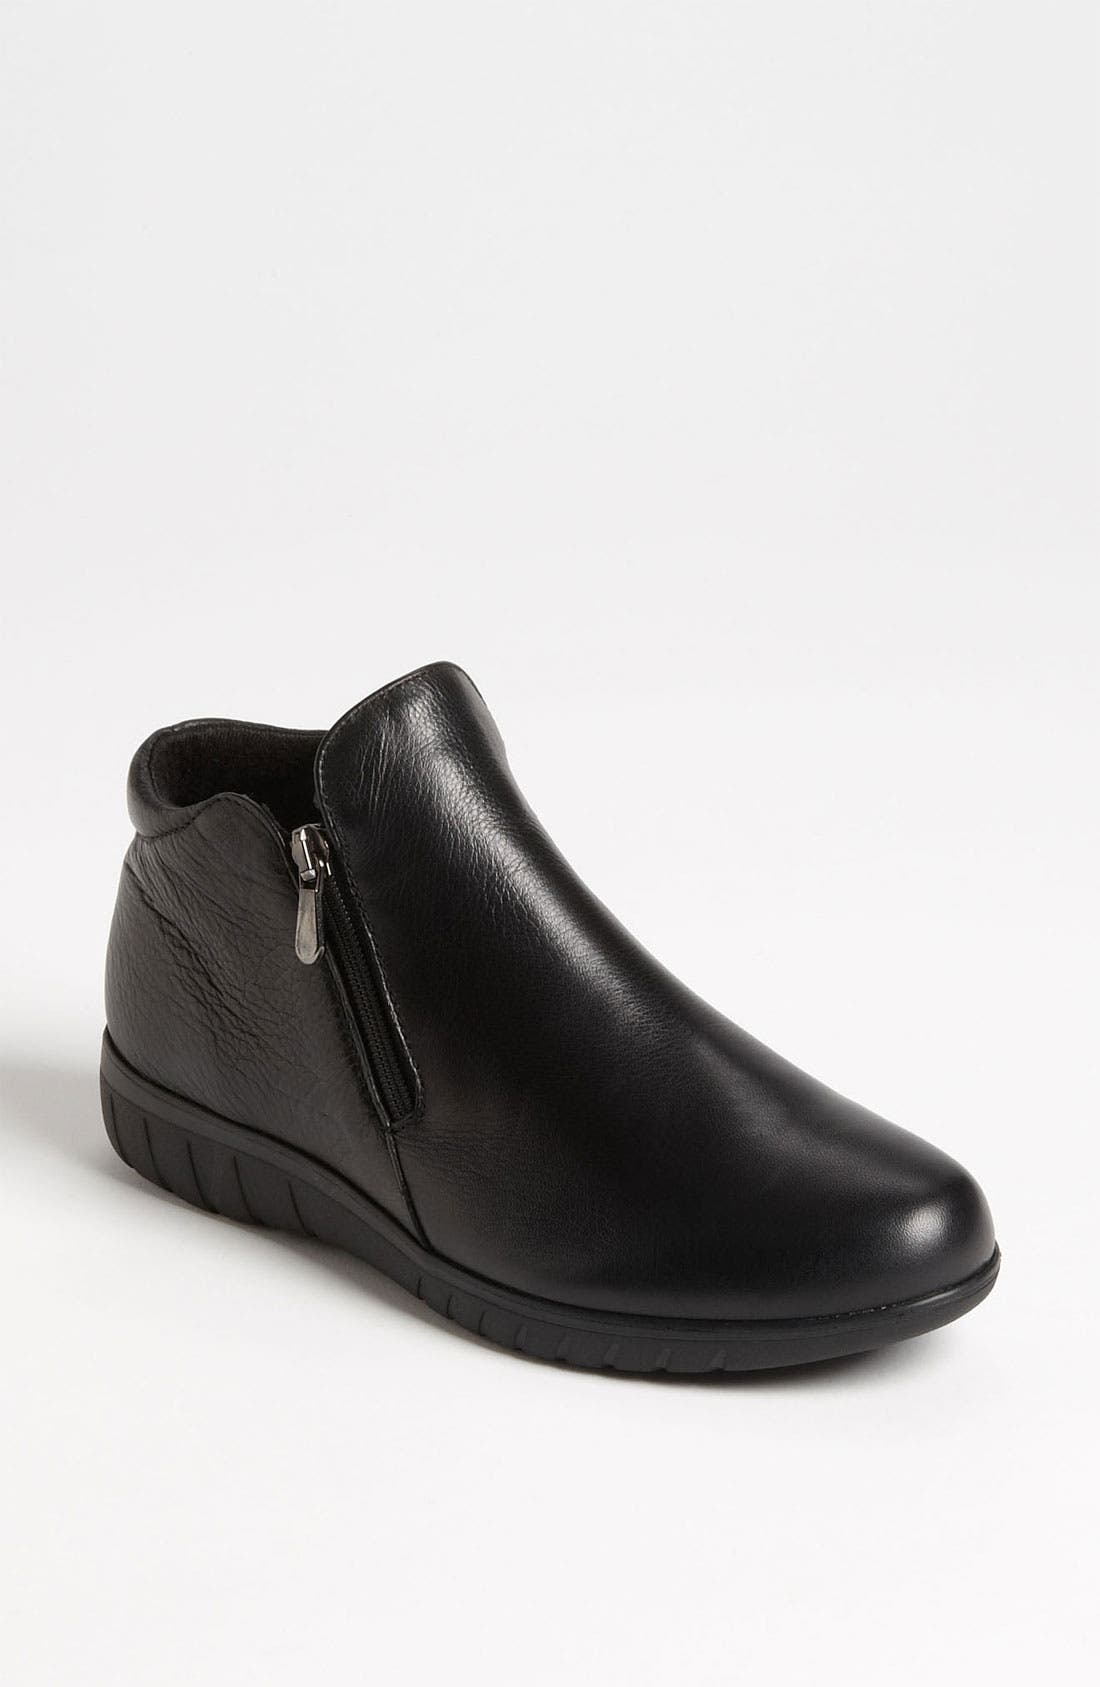 Alternate Image 1 Selected - Munro 'Kenzie' Flat (Women)